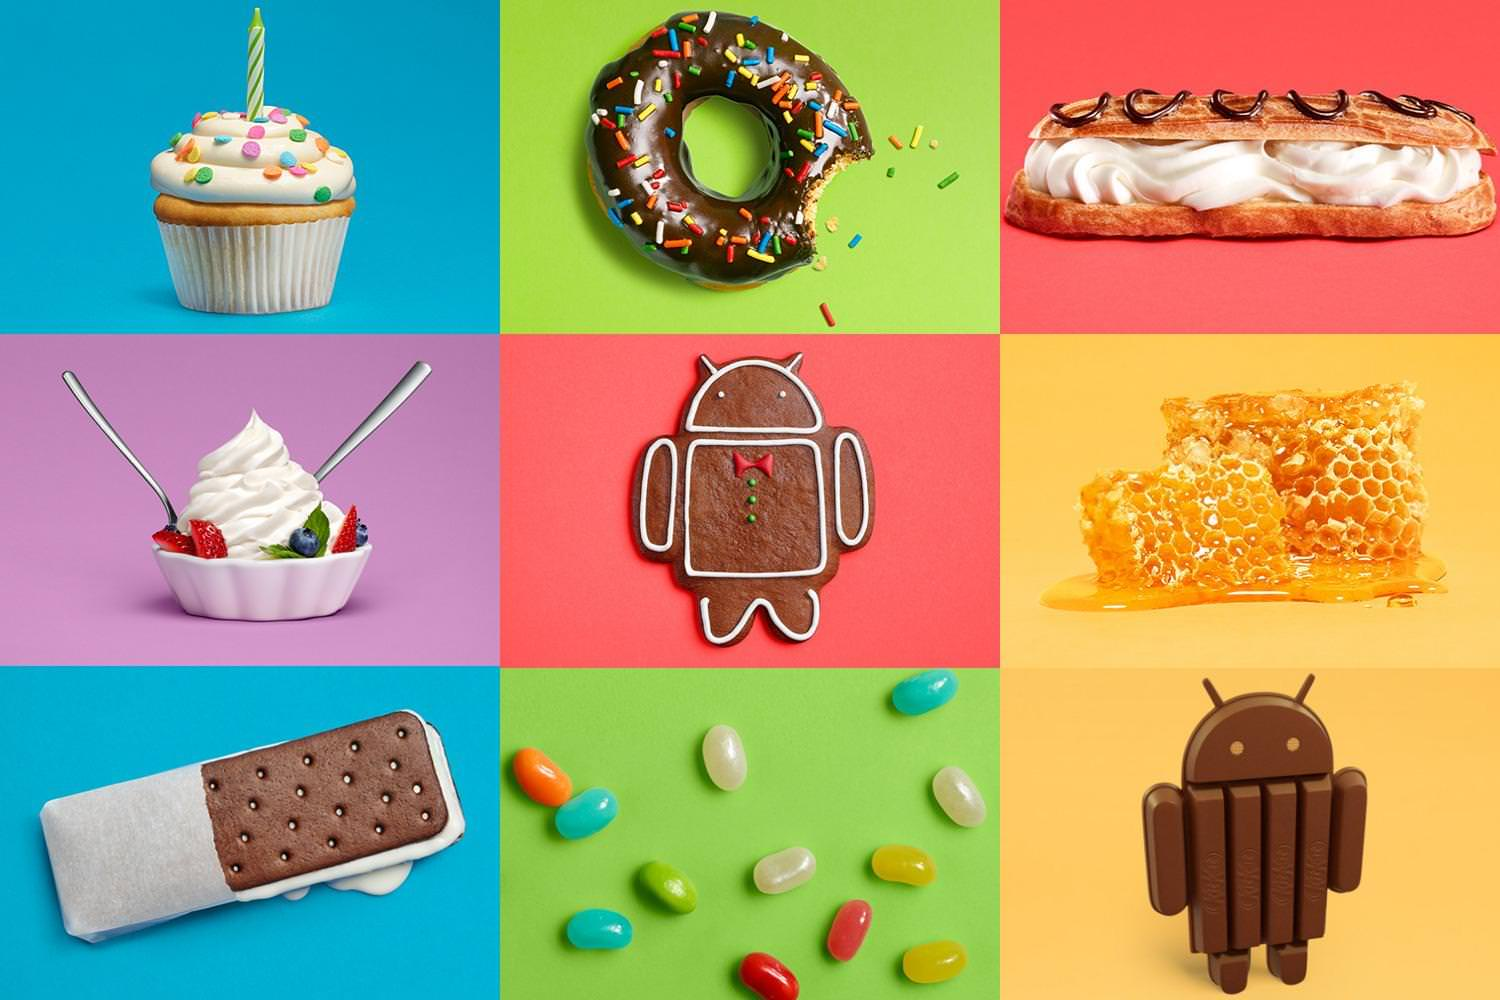 Android versions